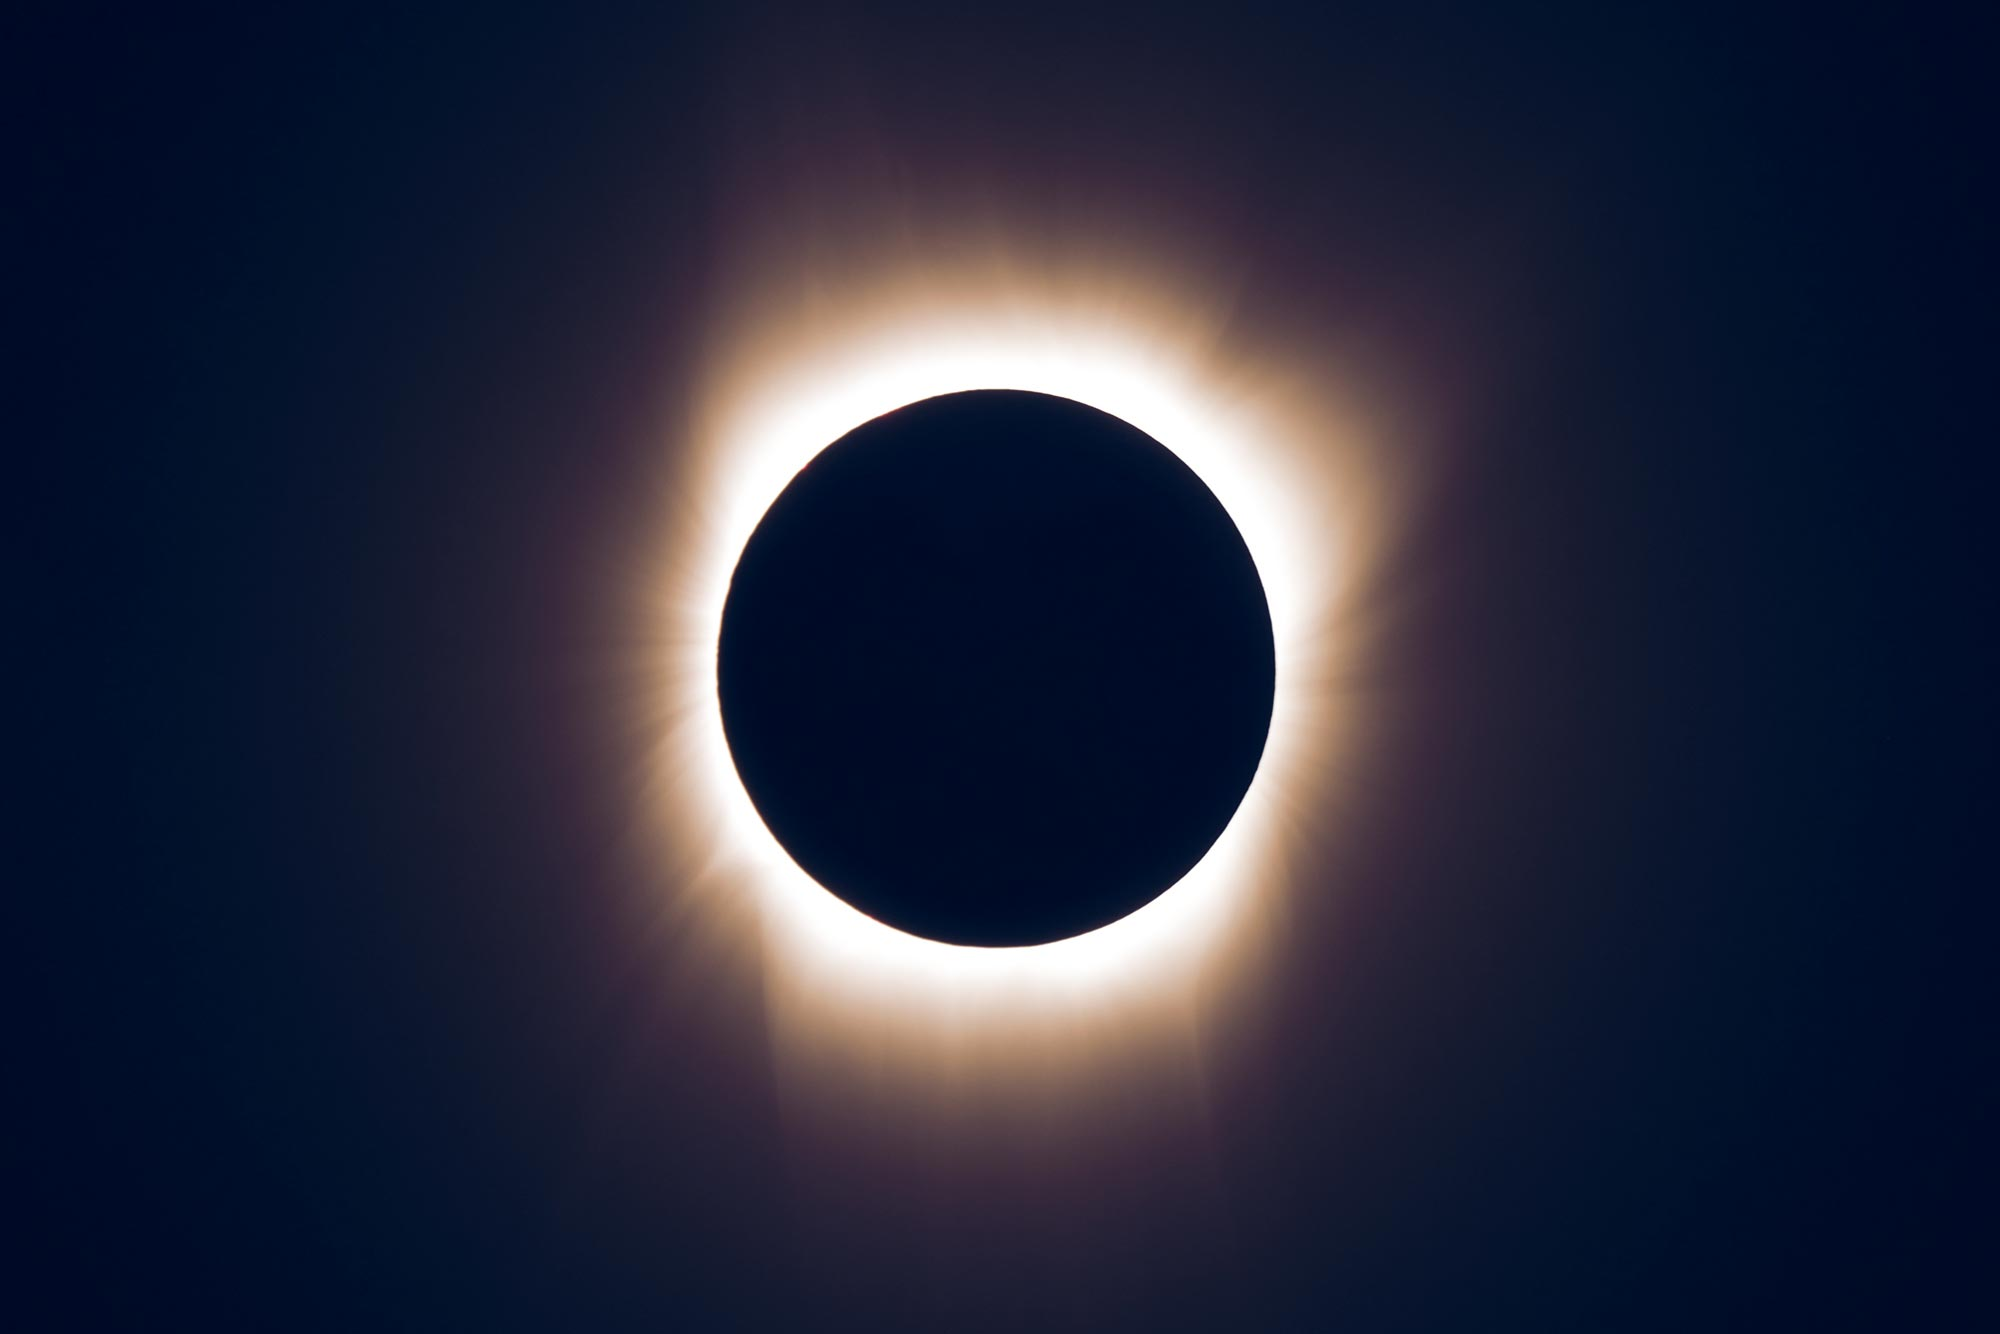 A total solar eclipse will occur Aug. 21. This image is of an event on July 11, 2010 as seen from the South Pacific. Photo by Williams College Eclipse Expedition - Jay M. Pasachoff, Muzhou Lu, and Craig Malamut)